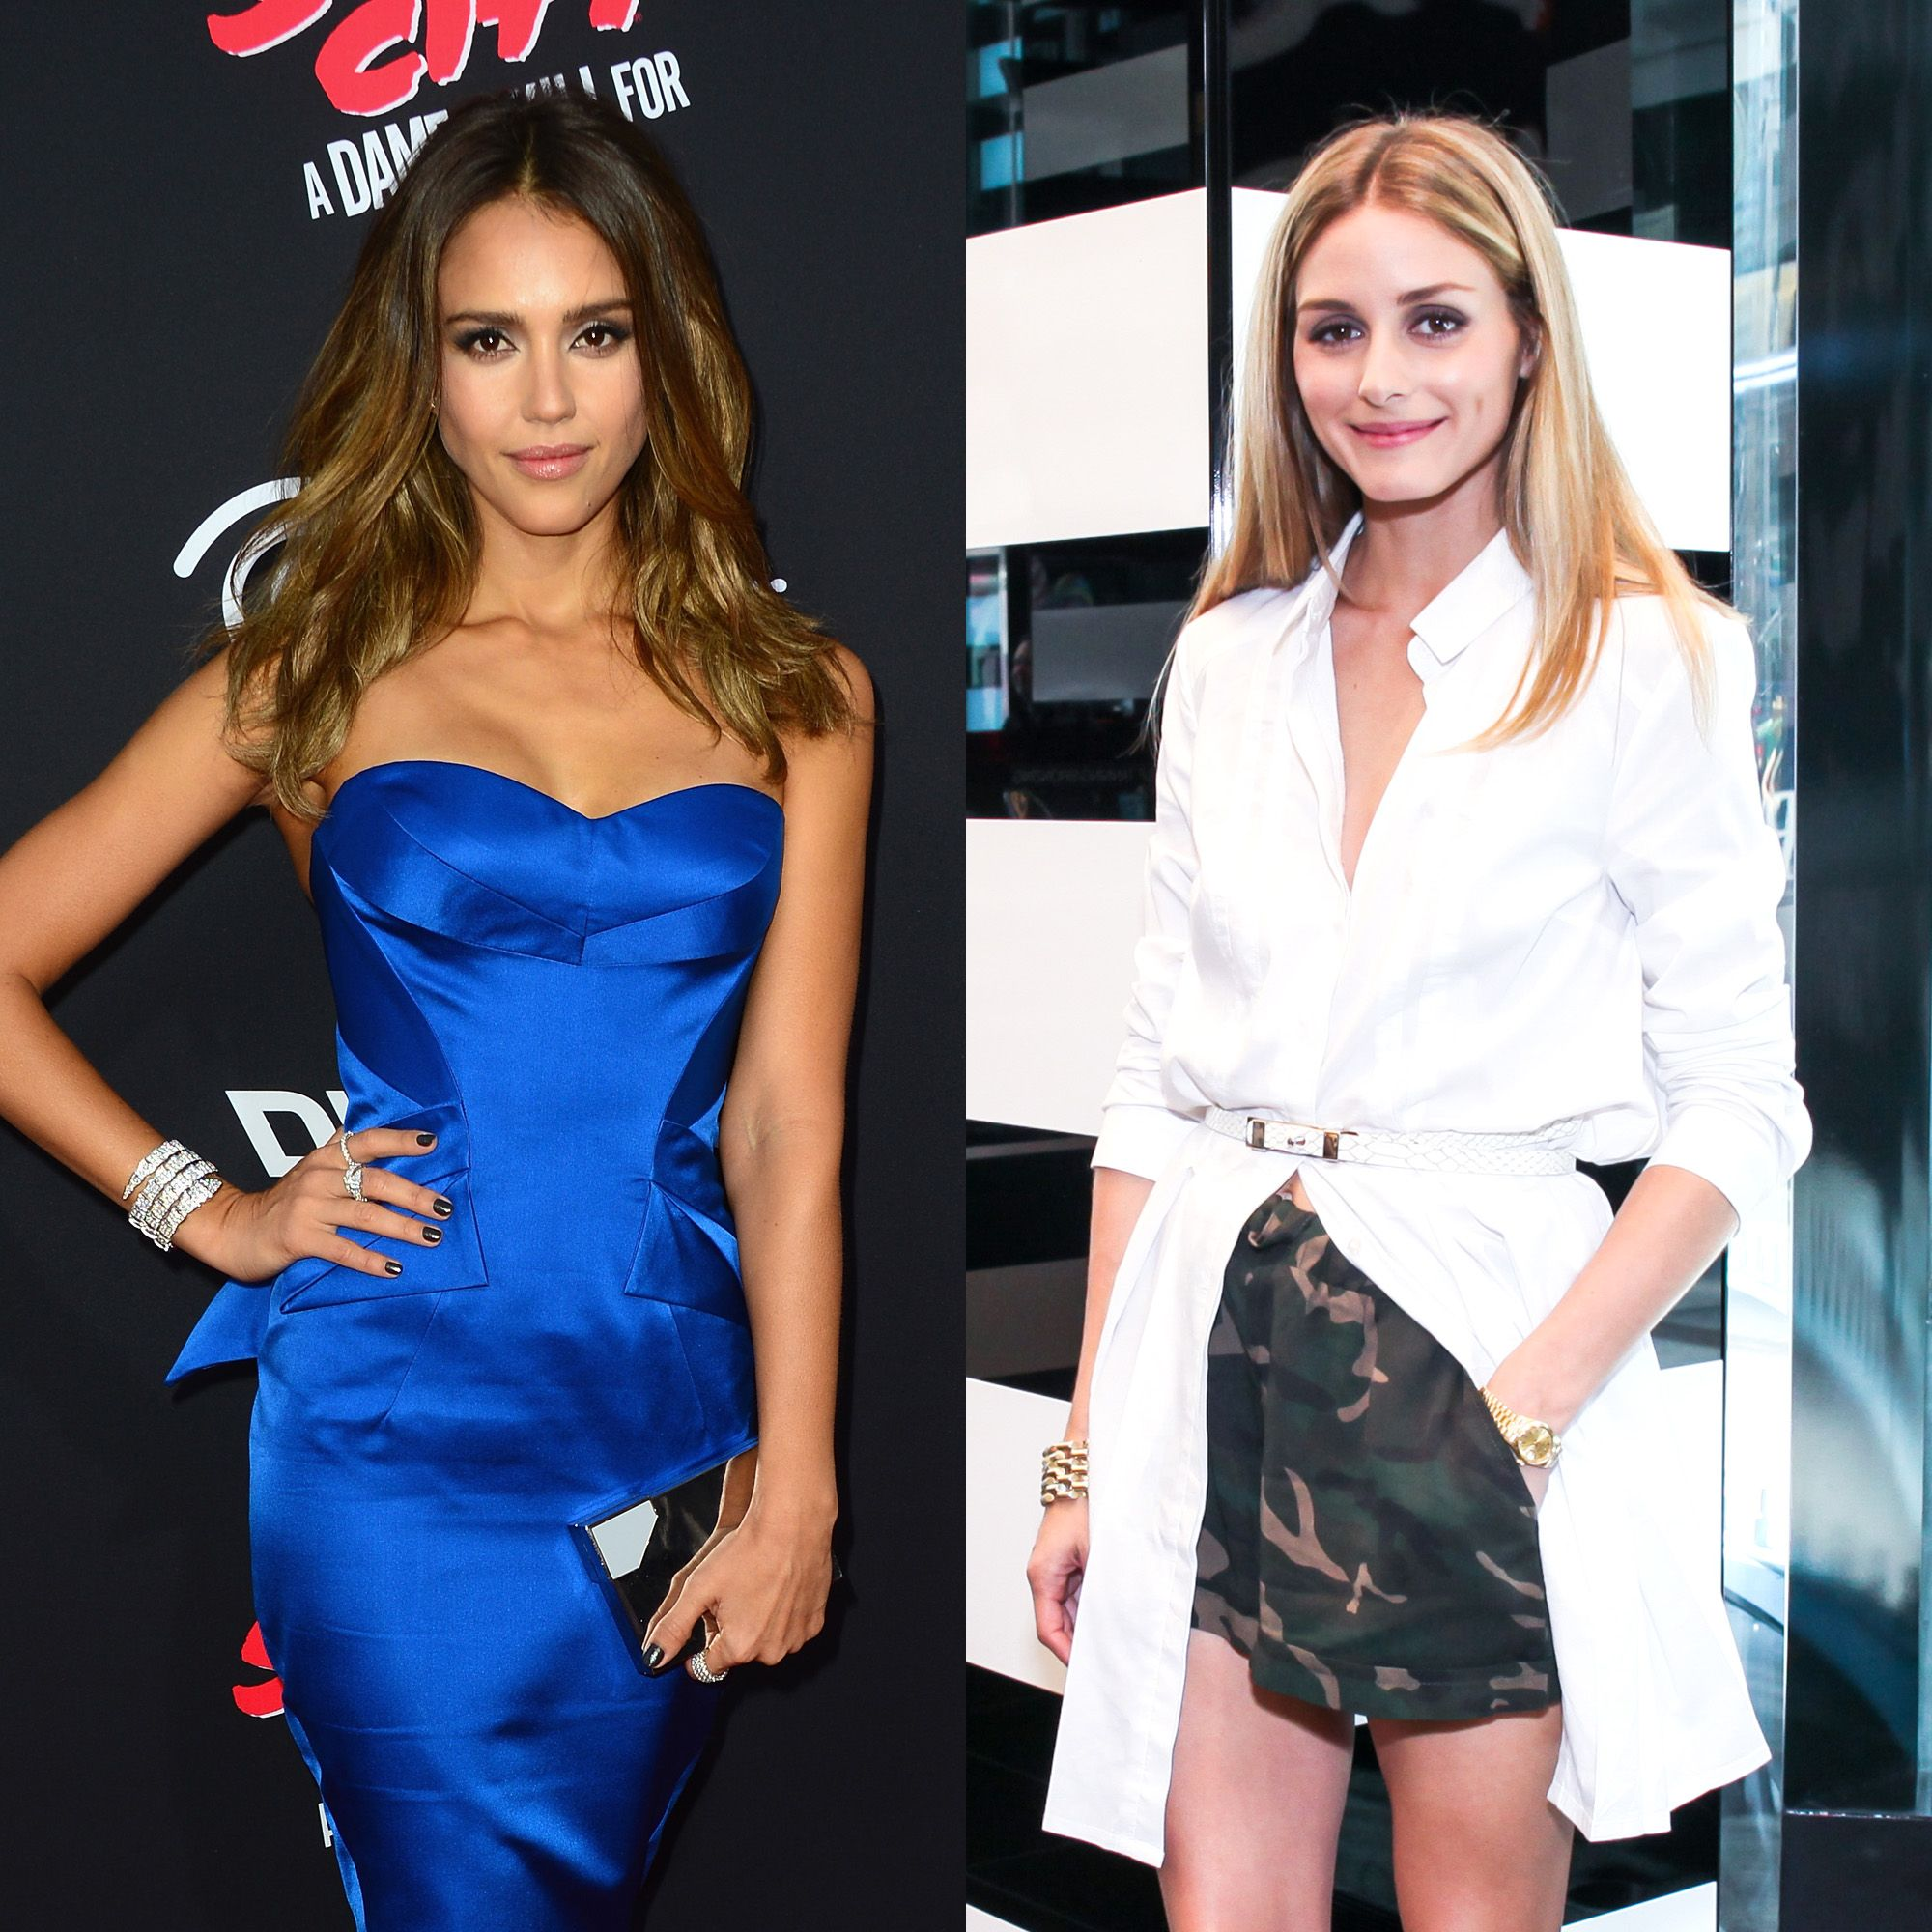 """<strong>The Celebs:</strong> Jessica Alba, <a target=""""_blank"""" href=""""http://www.harpersbazaar.com/beauty/diet-fitness/a10891/olivia-palermo-favorite-workout/"""">Olivia Palermo</a><strong>The Workout:</strong> Barre<strong>The Body Benefits:</strong> Barre classes use exercise balls, rubber bands and ballet barres to increase flexibility and lean muscle mass and tone and strengthen all over. Plus, they're gentle on joints.<strong>The Hot Spots:</strong> <a target=""""_blank"""" href=""""https://www.flywheelsports.com/"""">Flybarre</a>, <a target=""""_blank"""" href=""""http://www.thedaileymethod.com/"""">The Dailey Method</a>"""